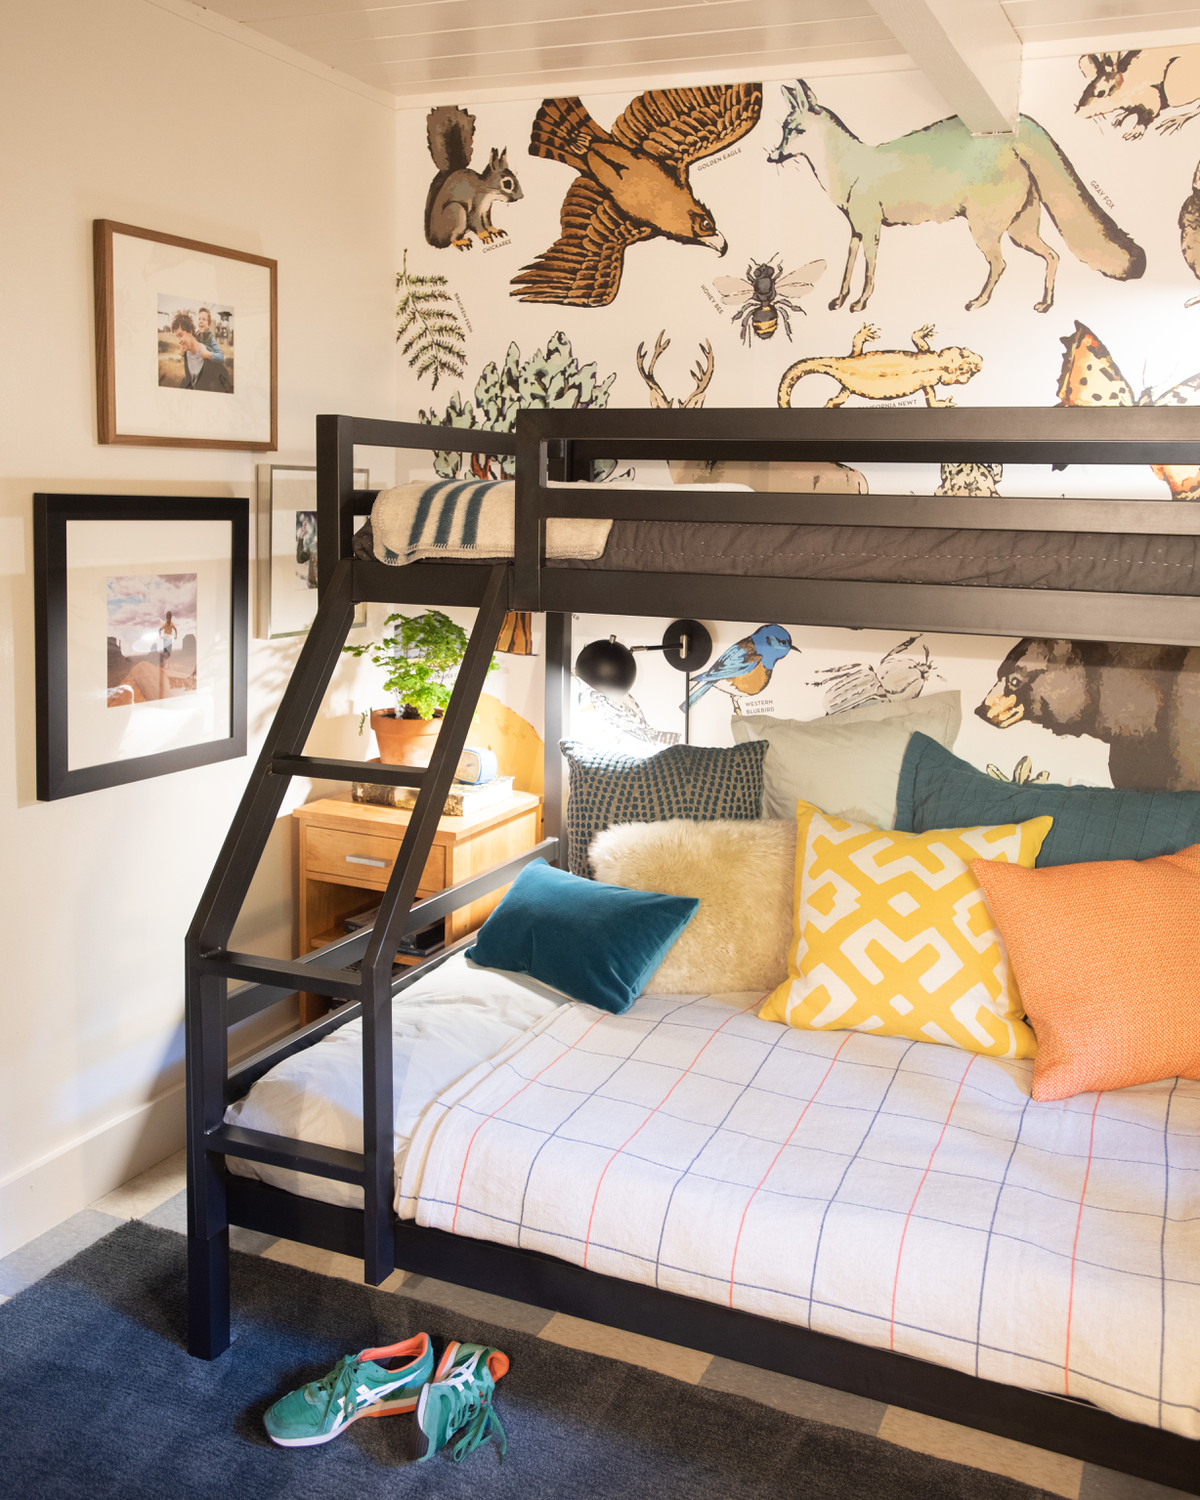 Kids Room Wallpaper Designs: The Treehouse: Guest Room / Boys Room Ideas